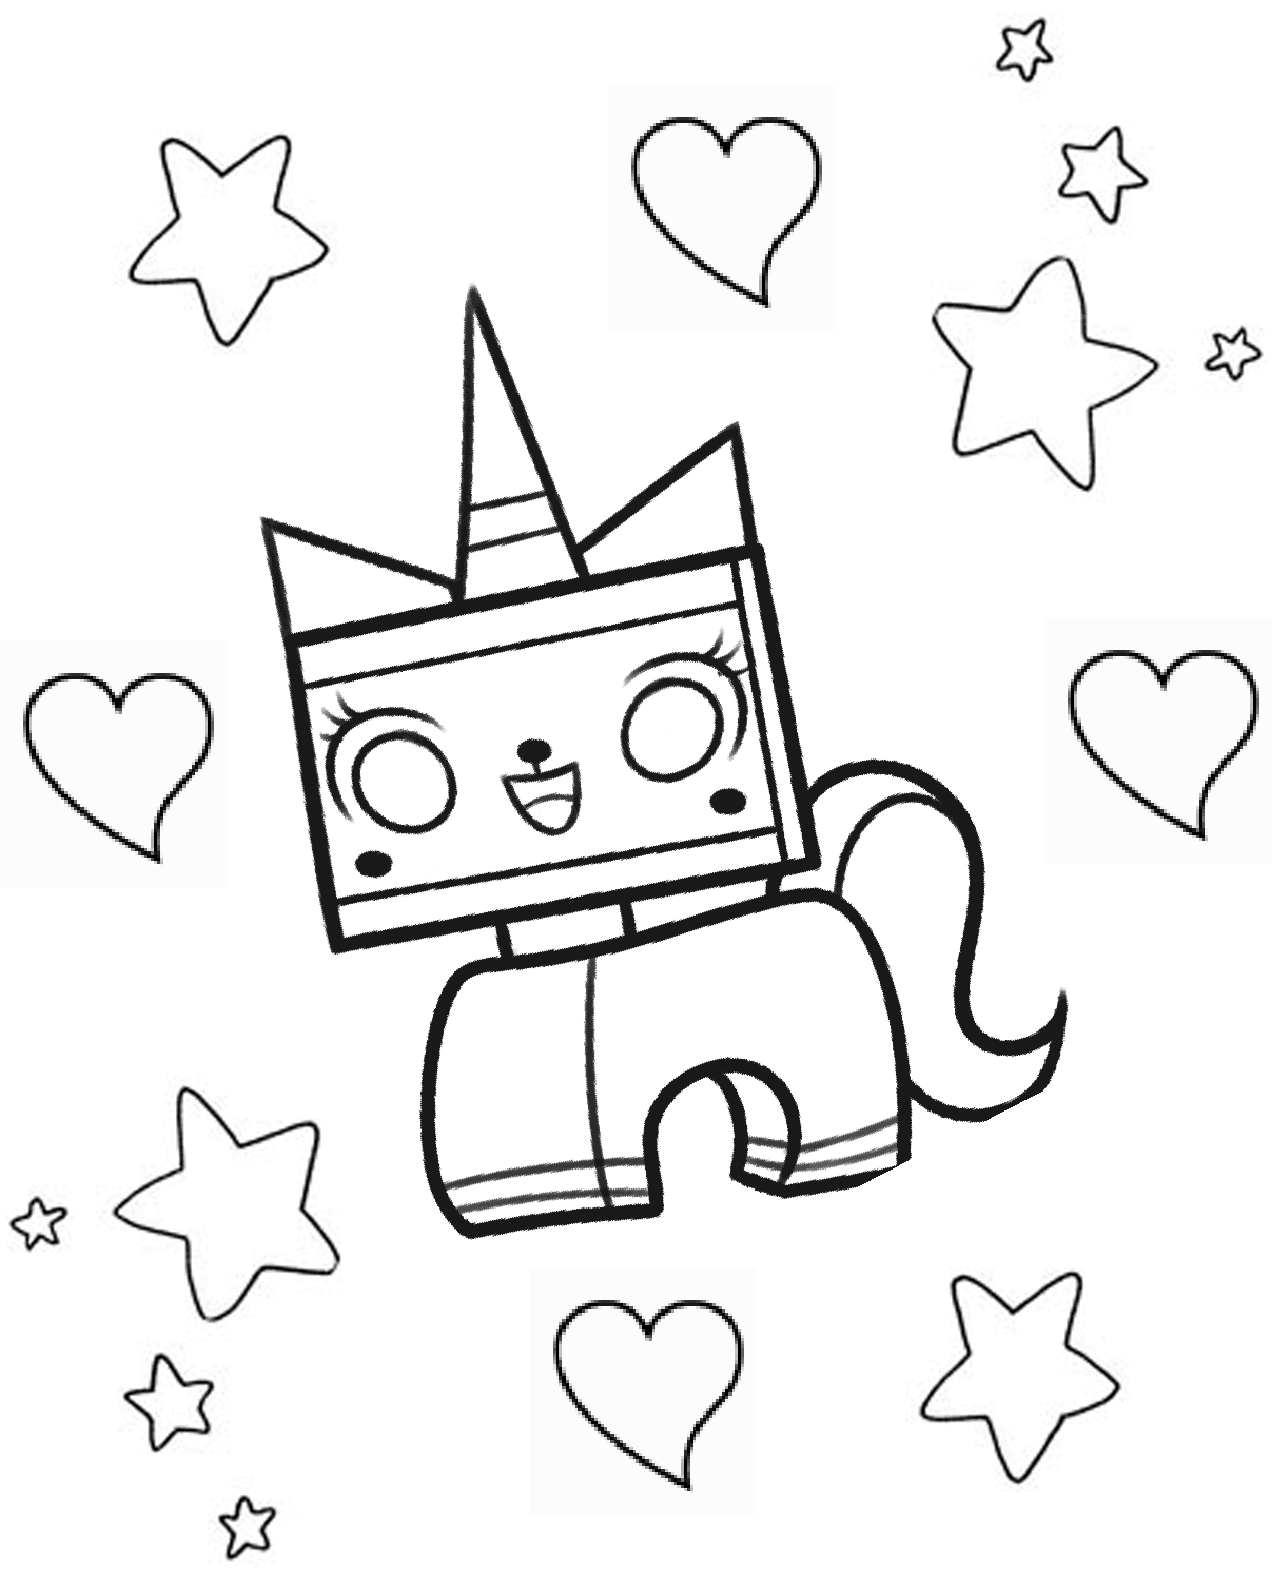 Funny Lego the Big Adventure coloring page for children